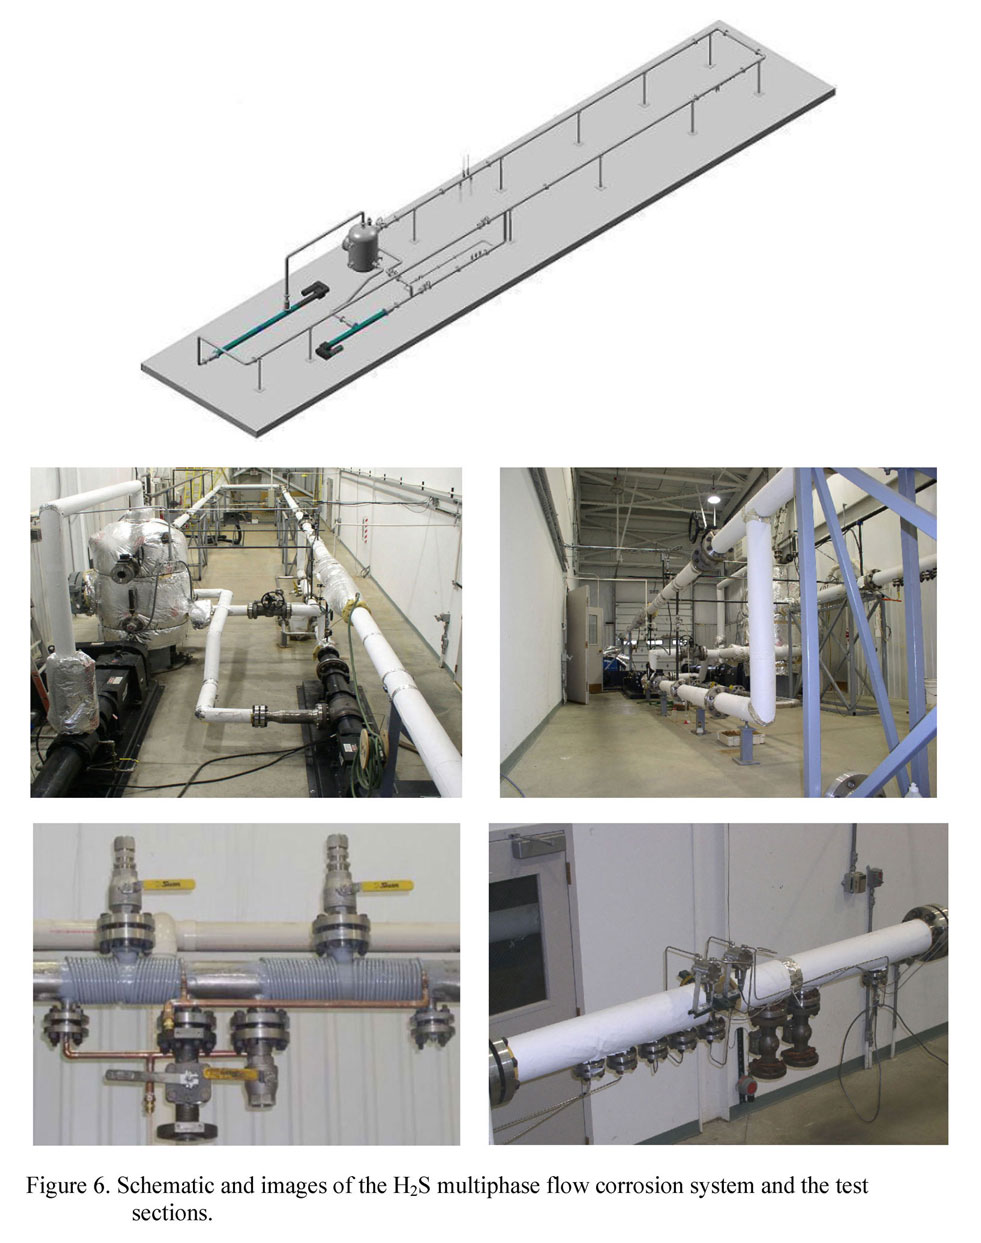 Schematic and images of the H2S multiphase flow corrosion system and the test sections